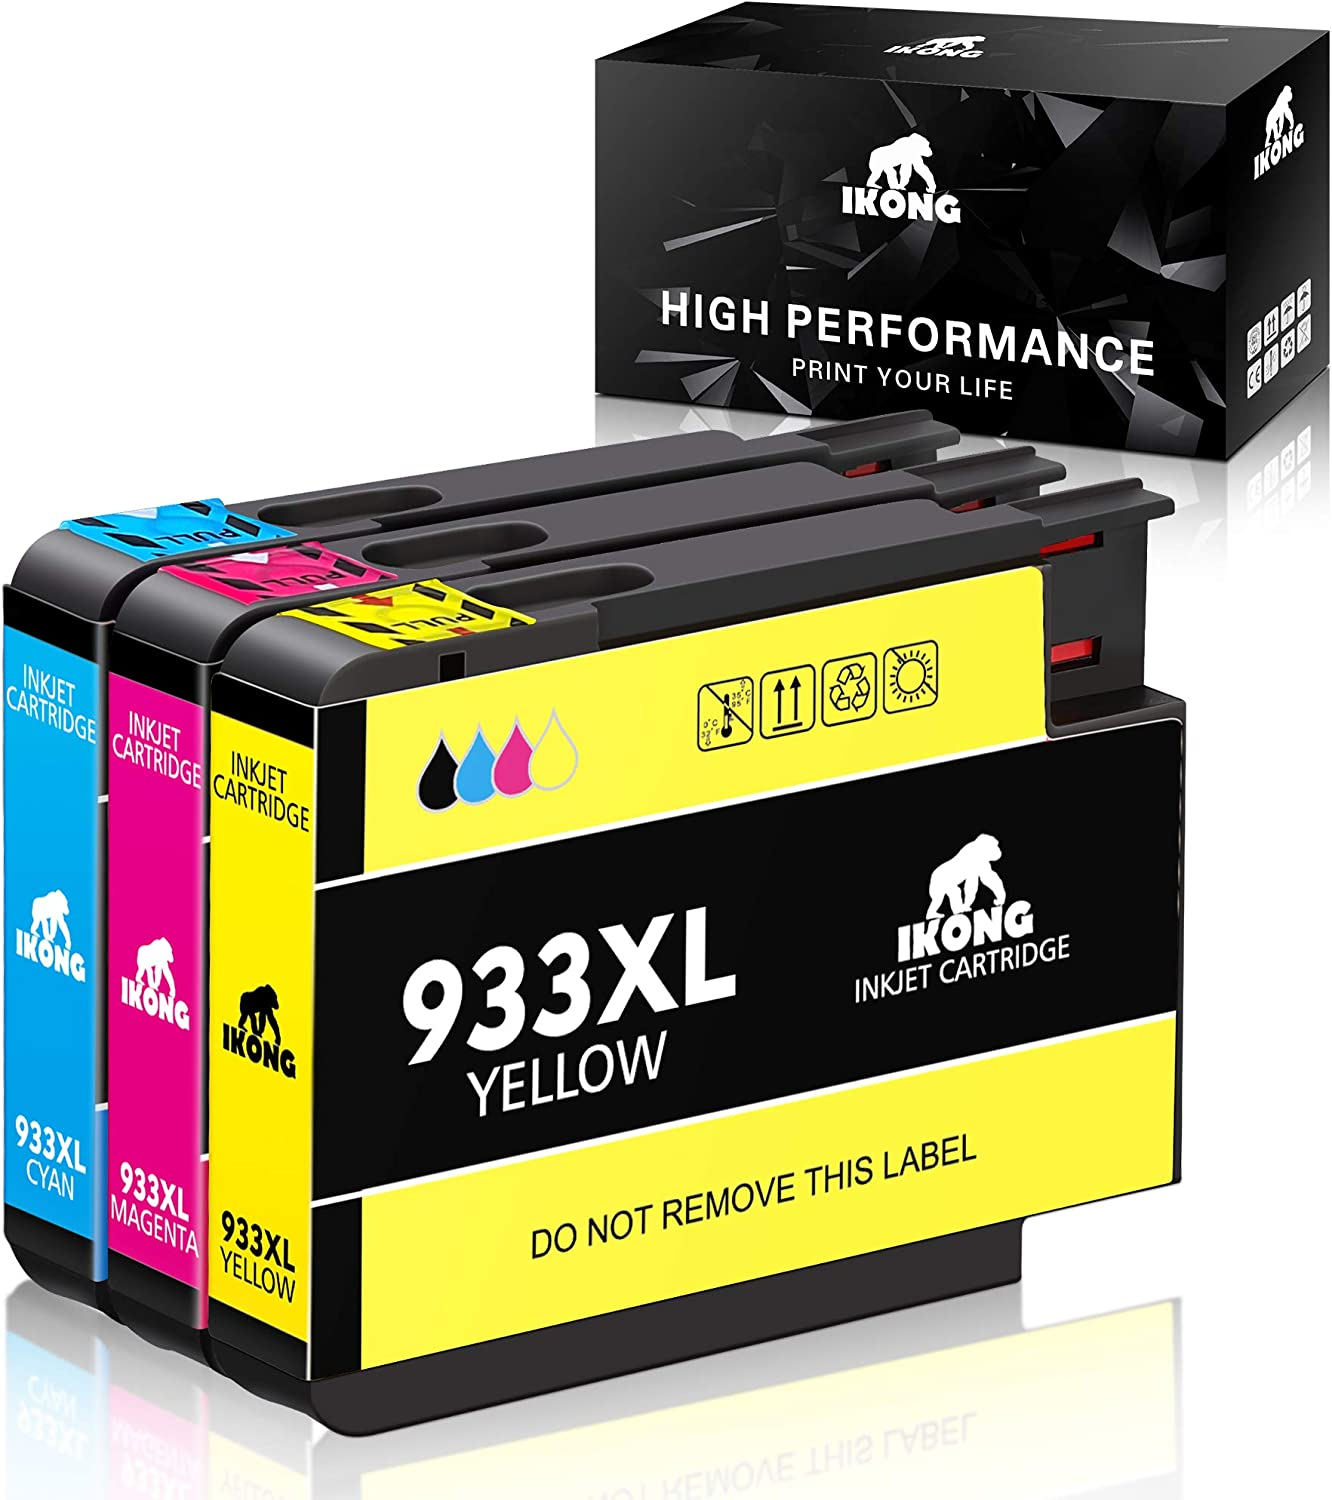 IKONG Compatible Ink Cartridge Replacement for 933 933xl Works with HP Officejet 6700 Officejet 6600 Officejet 7610 Officejet 6100 Officejet 7110 Officejet 7612 Printer